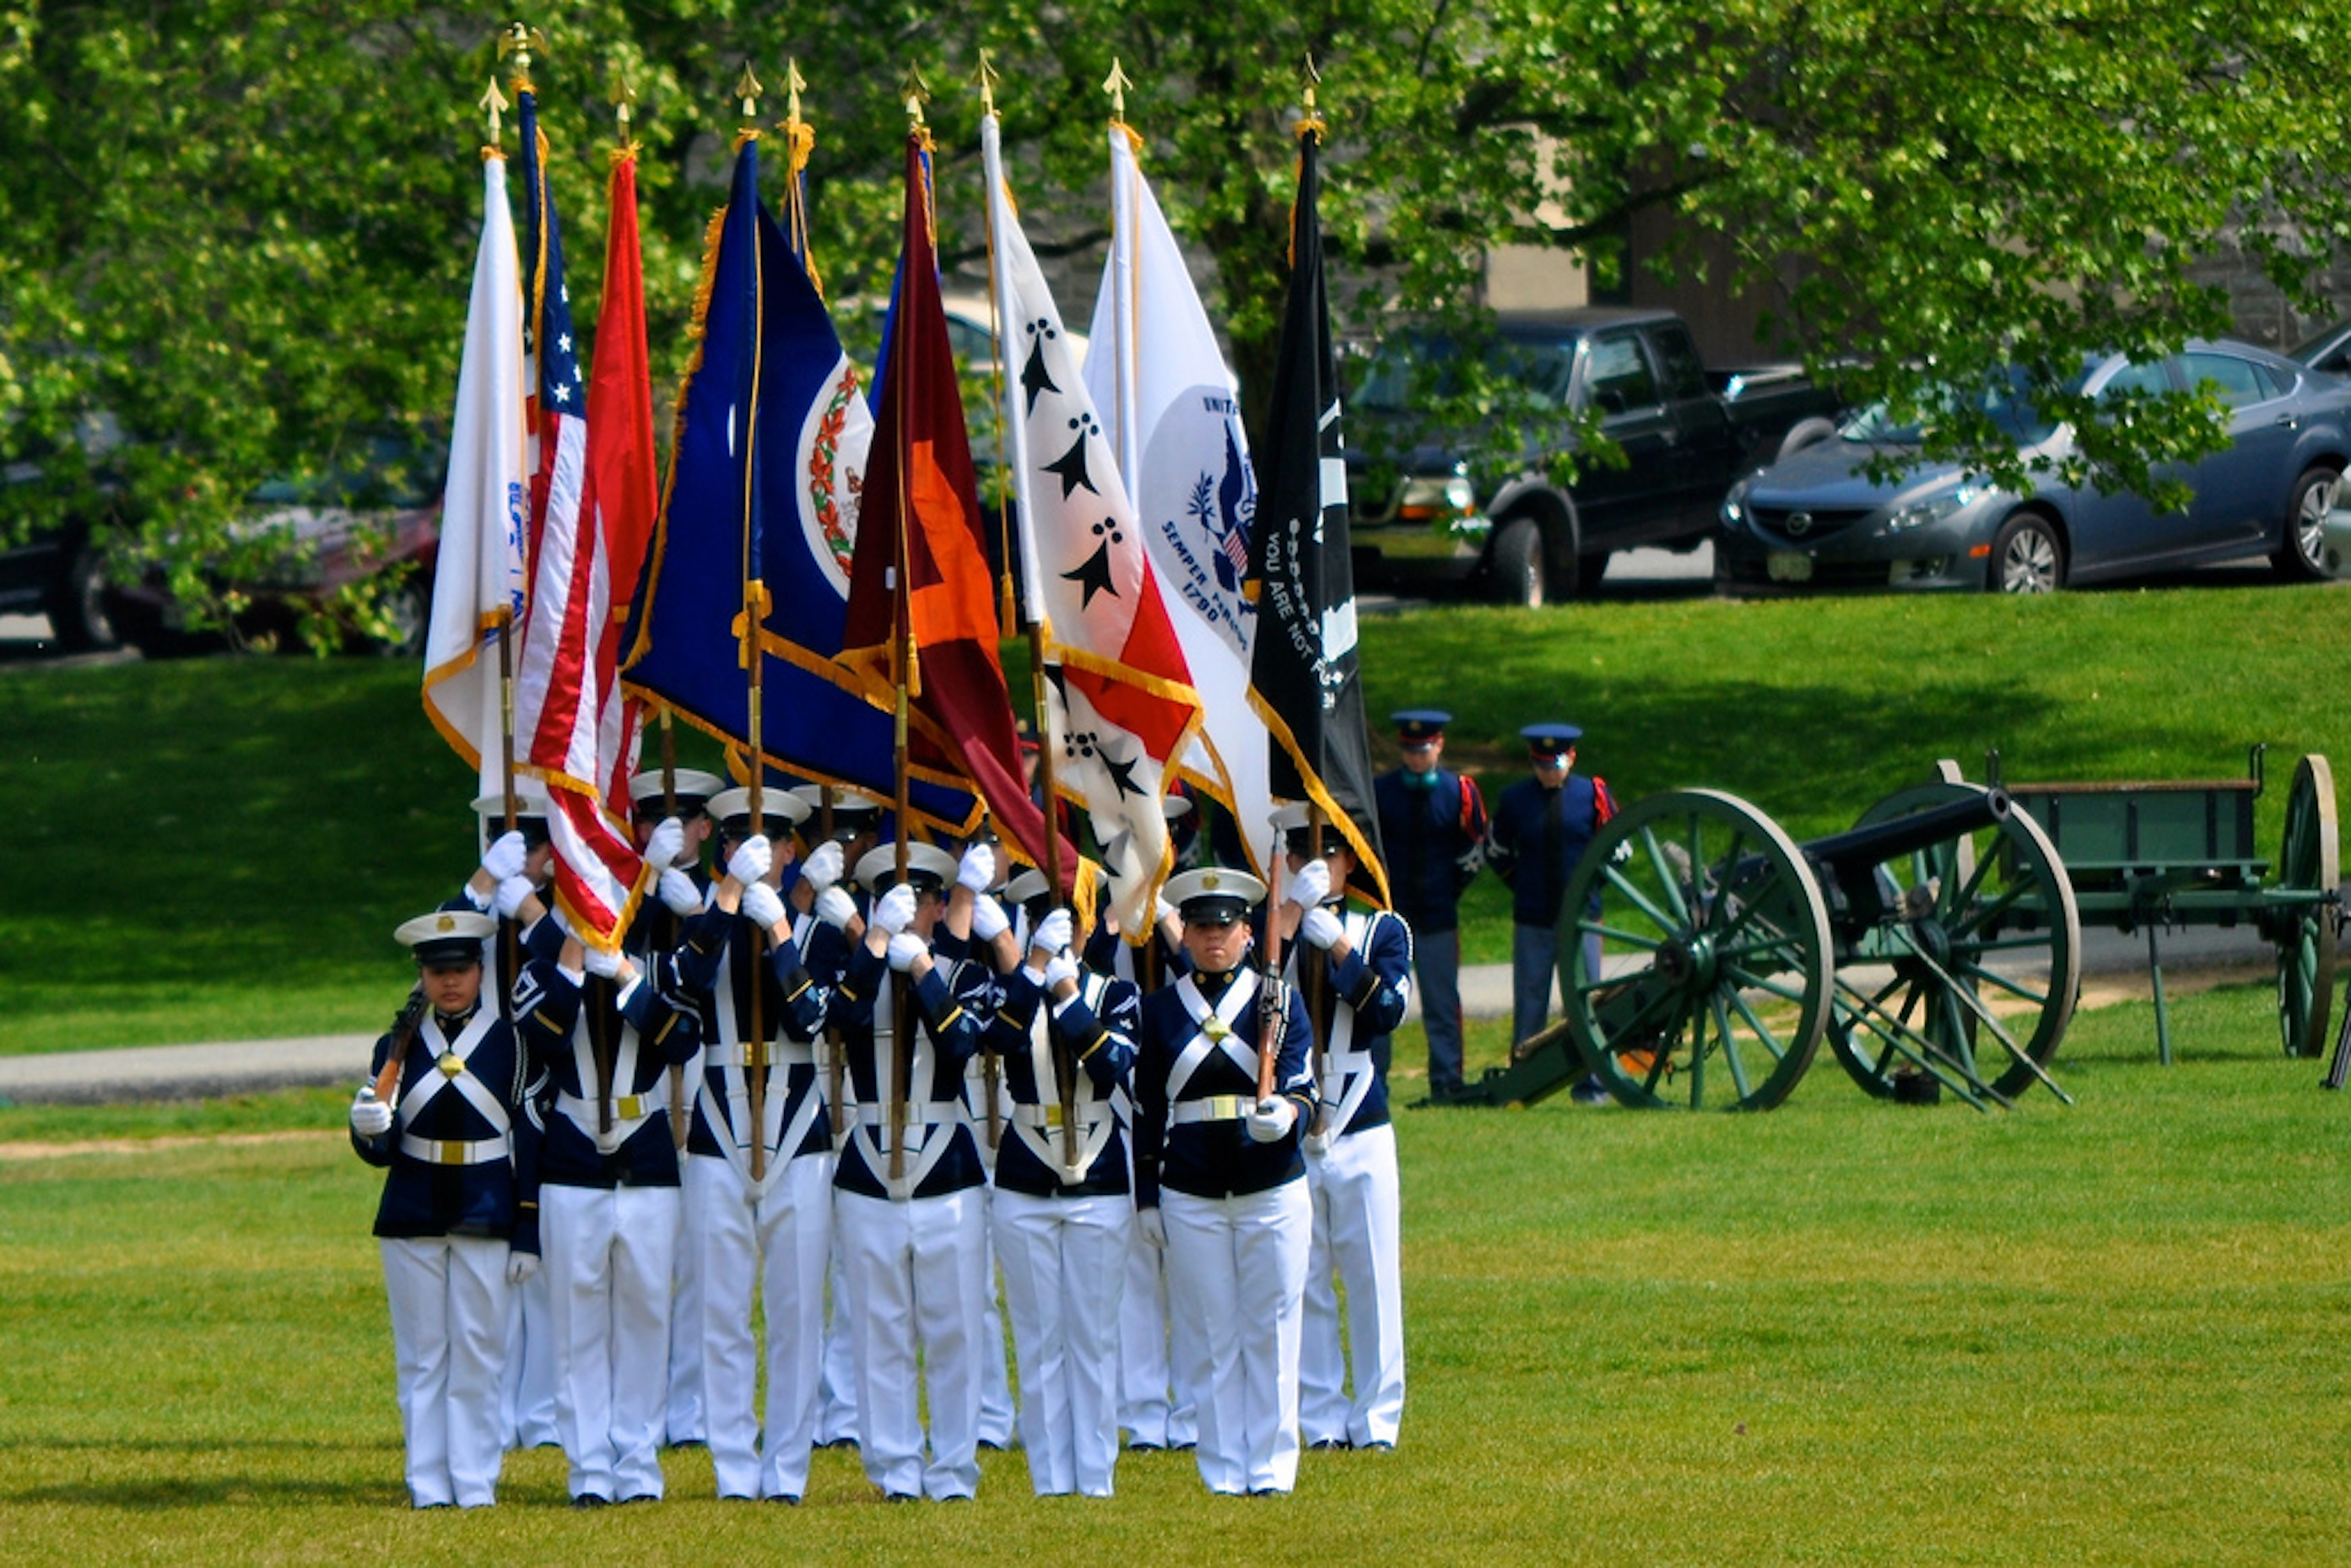 The Virginia Tech Corps of Cadets Color Guard and cannon, Skipper, prepare for the start of a parade on the Drillfield.